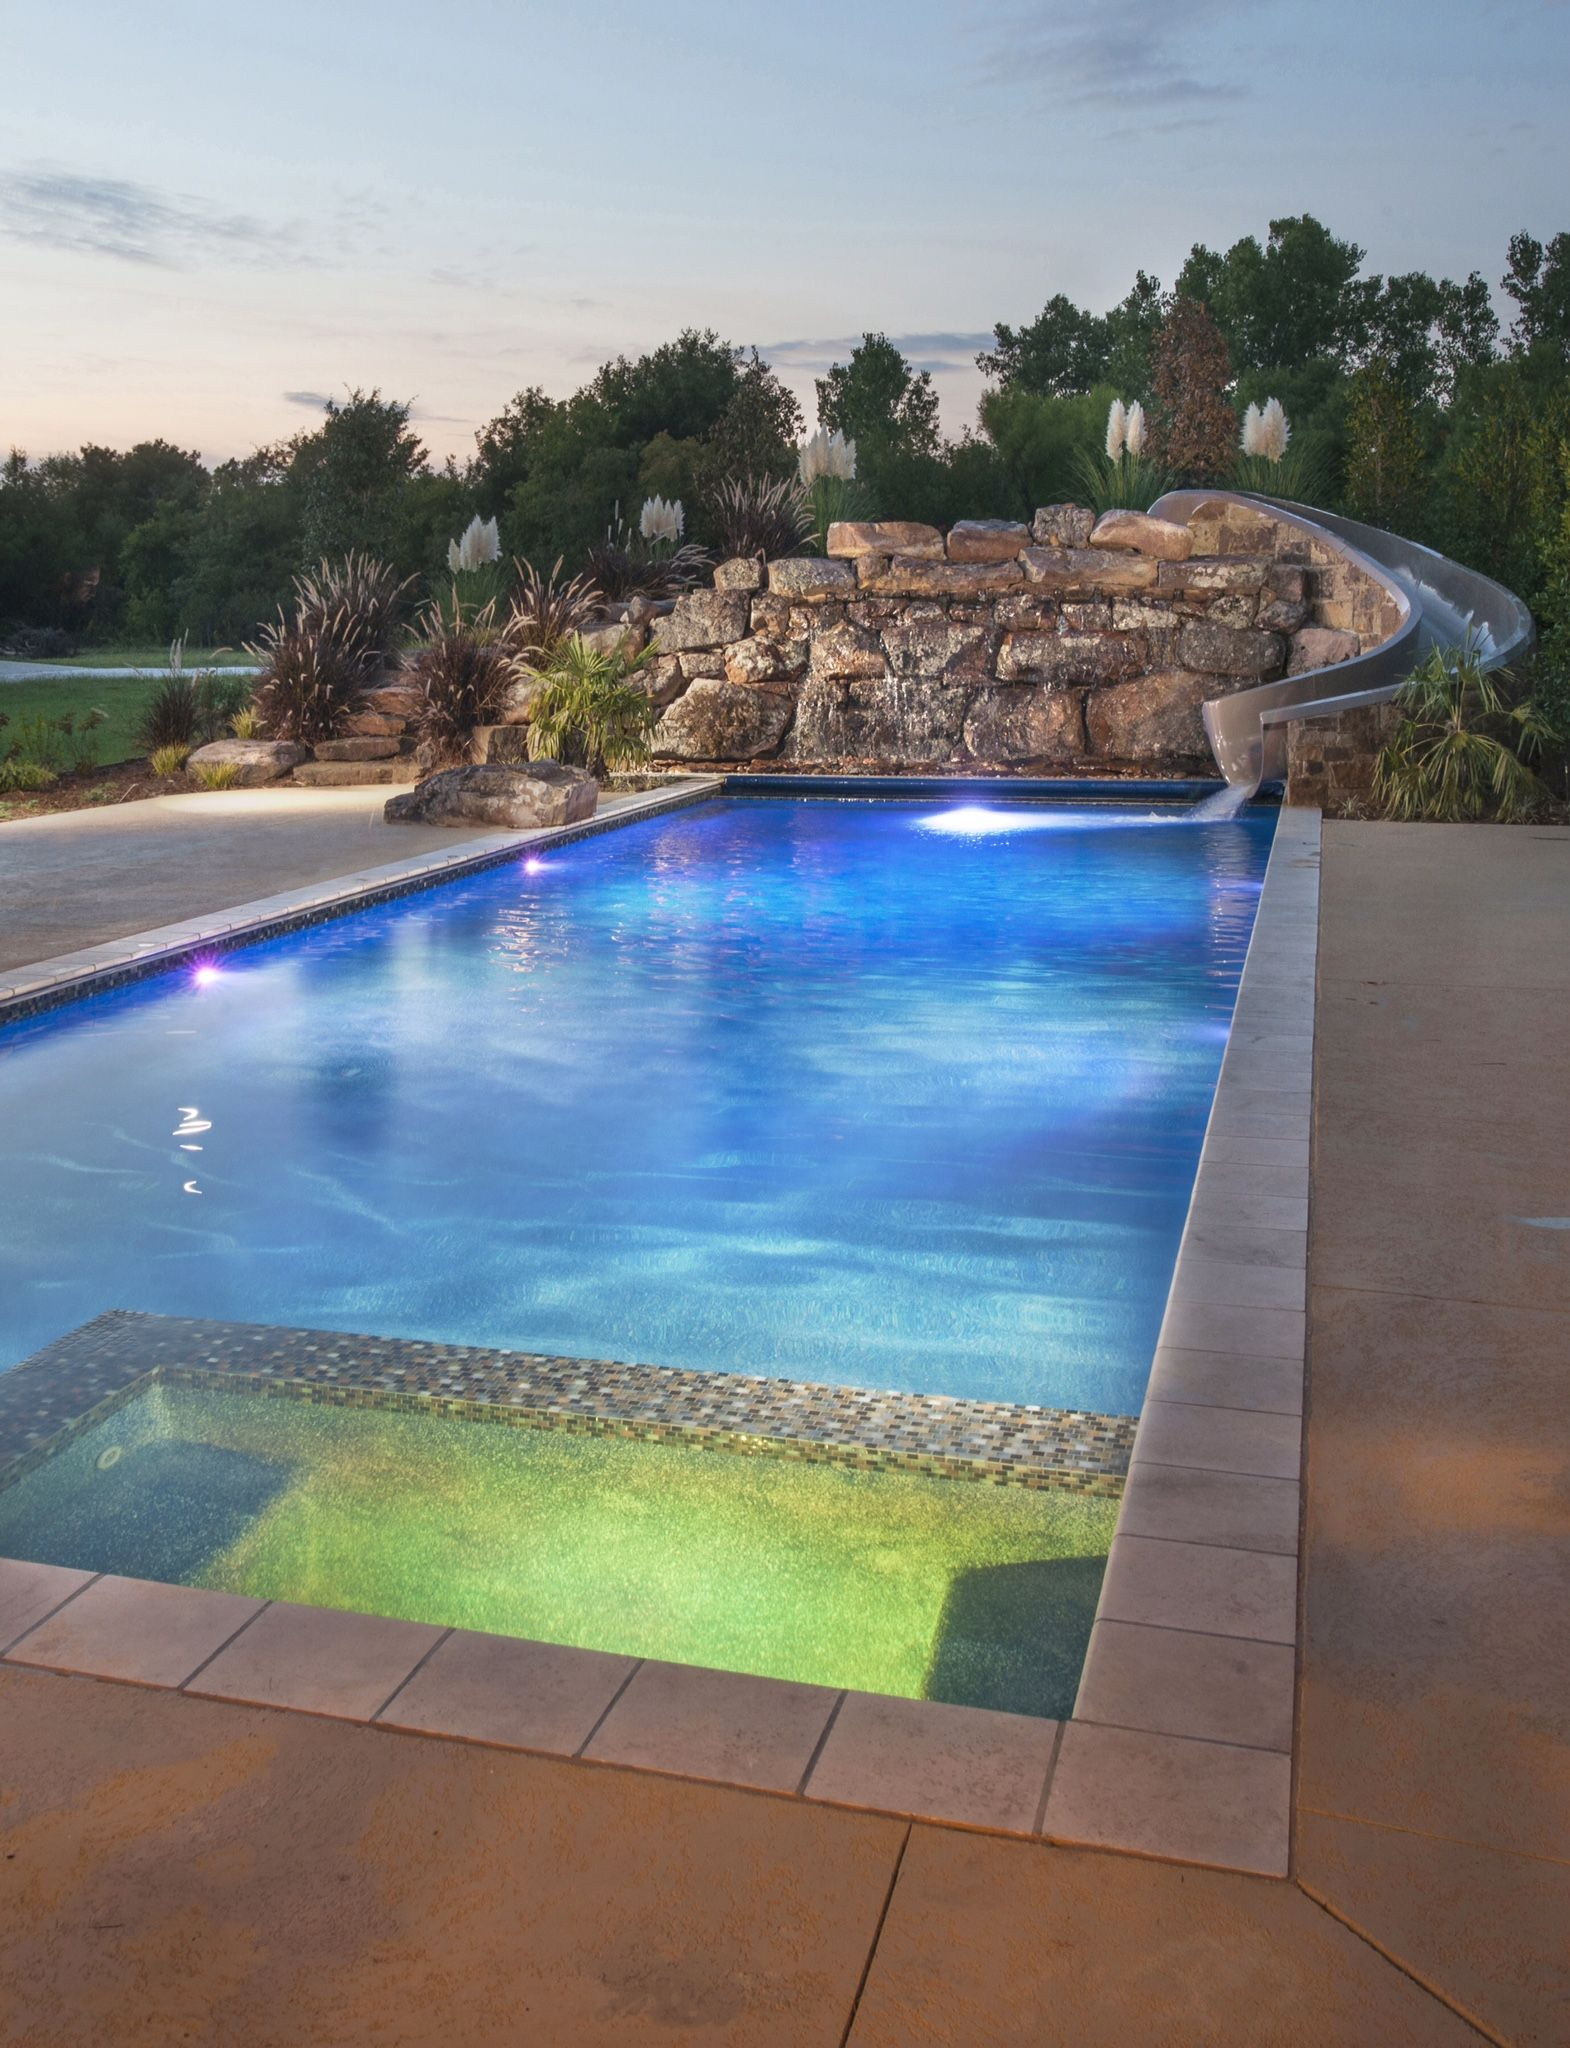 Luxus Outdoor Pool Beautiful Modern Pool With L E D Features Spill Over Spa